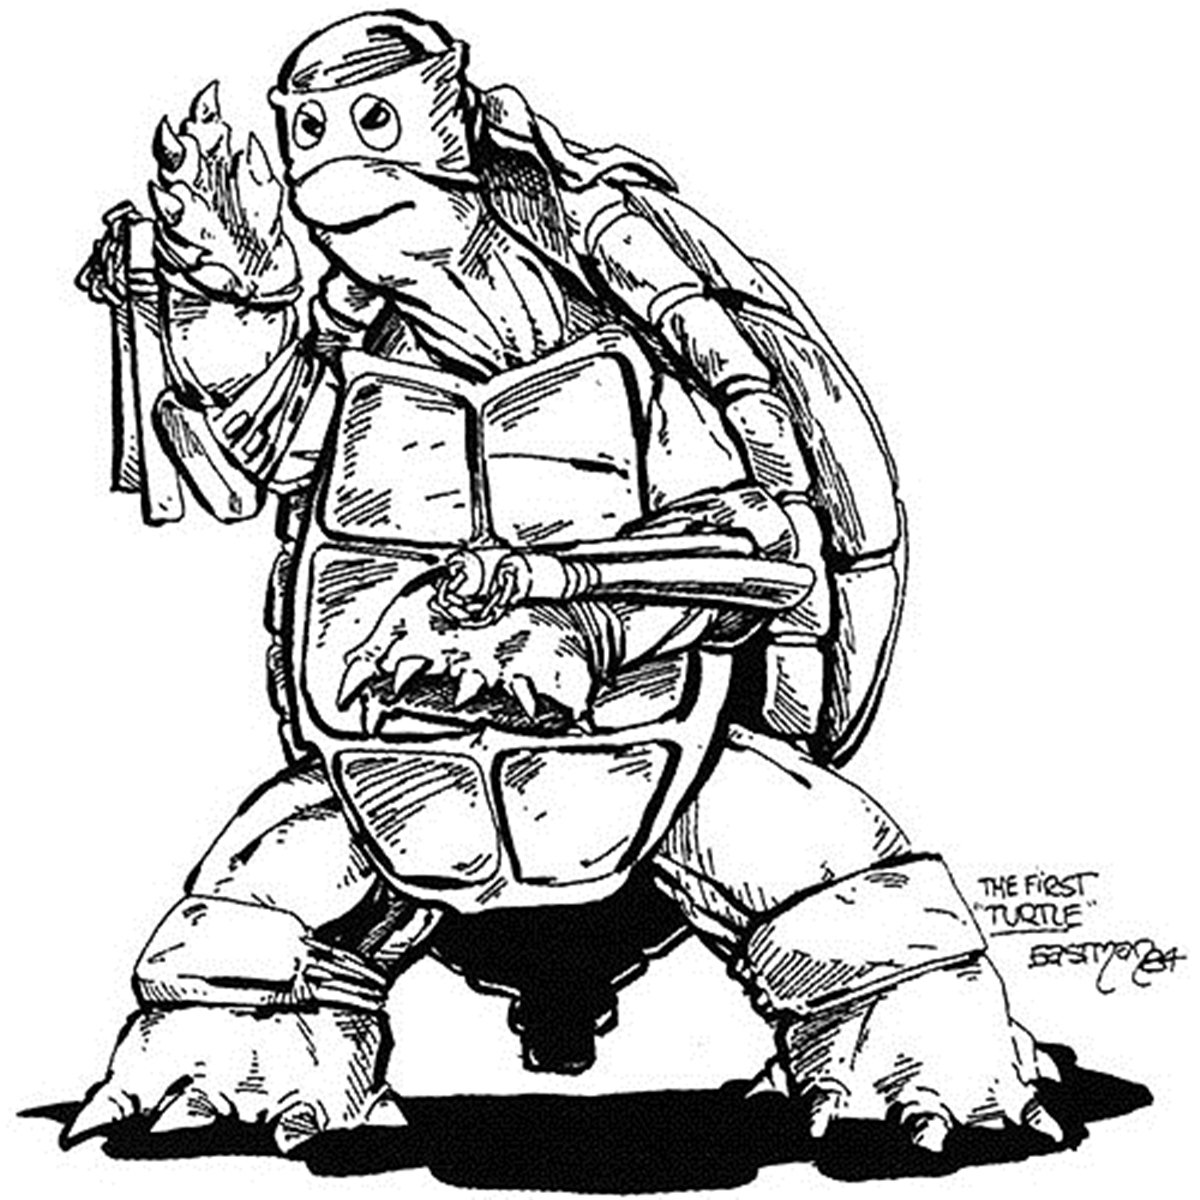 1 14 12 Things You Probably Didn't Know About The Teenage Mutant Ninja Turtles